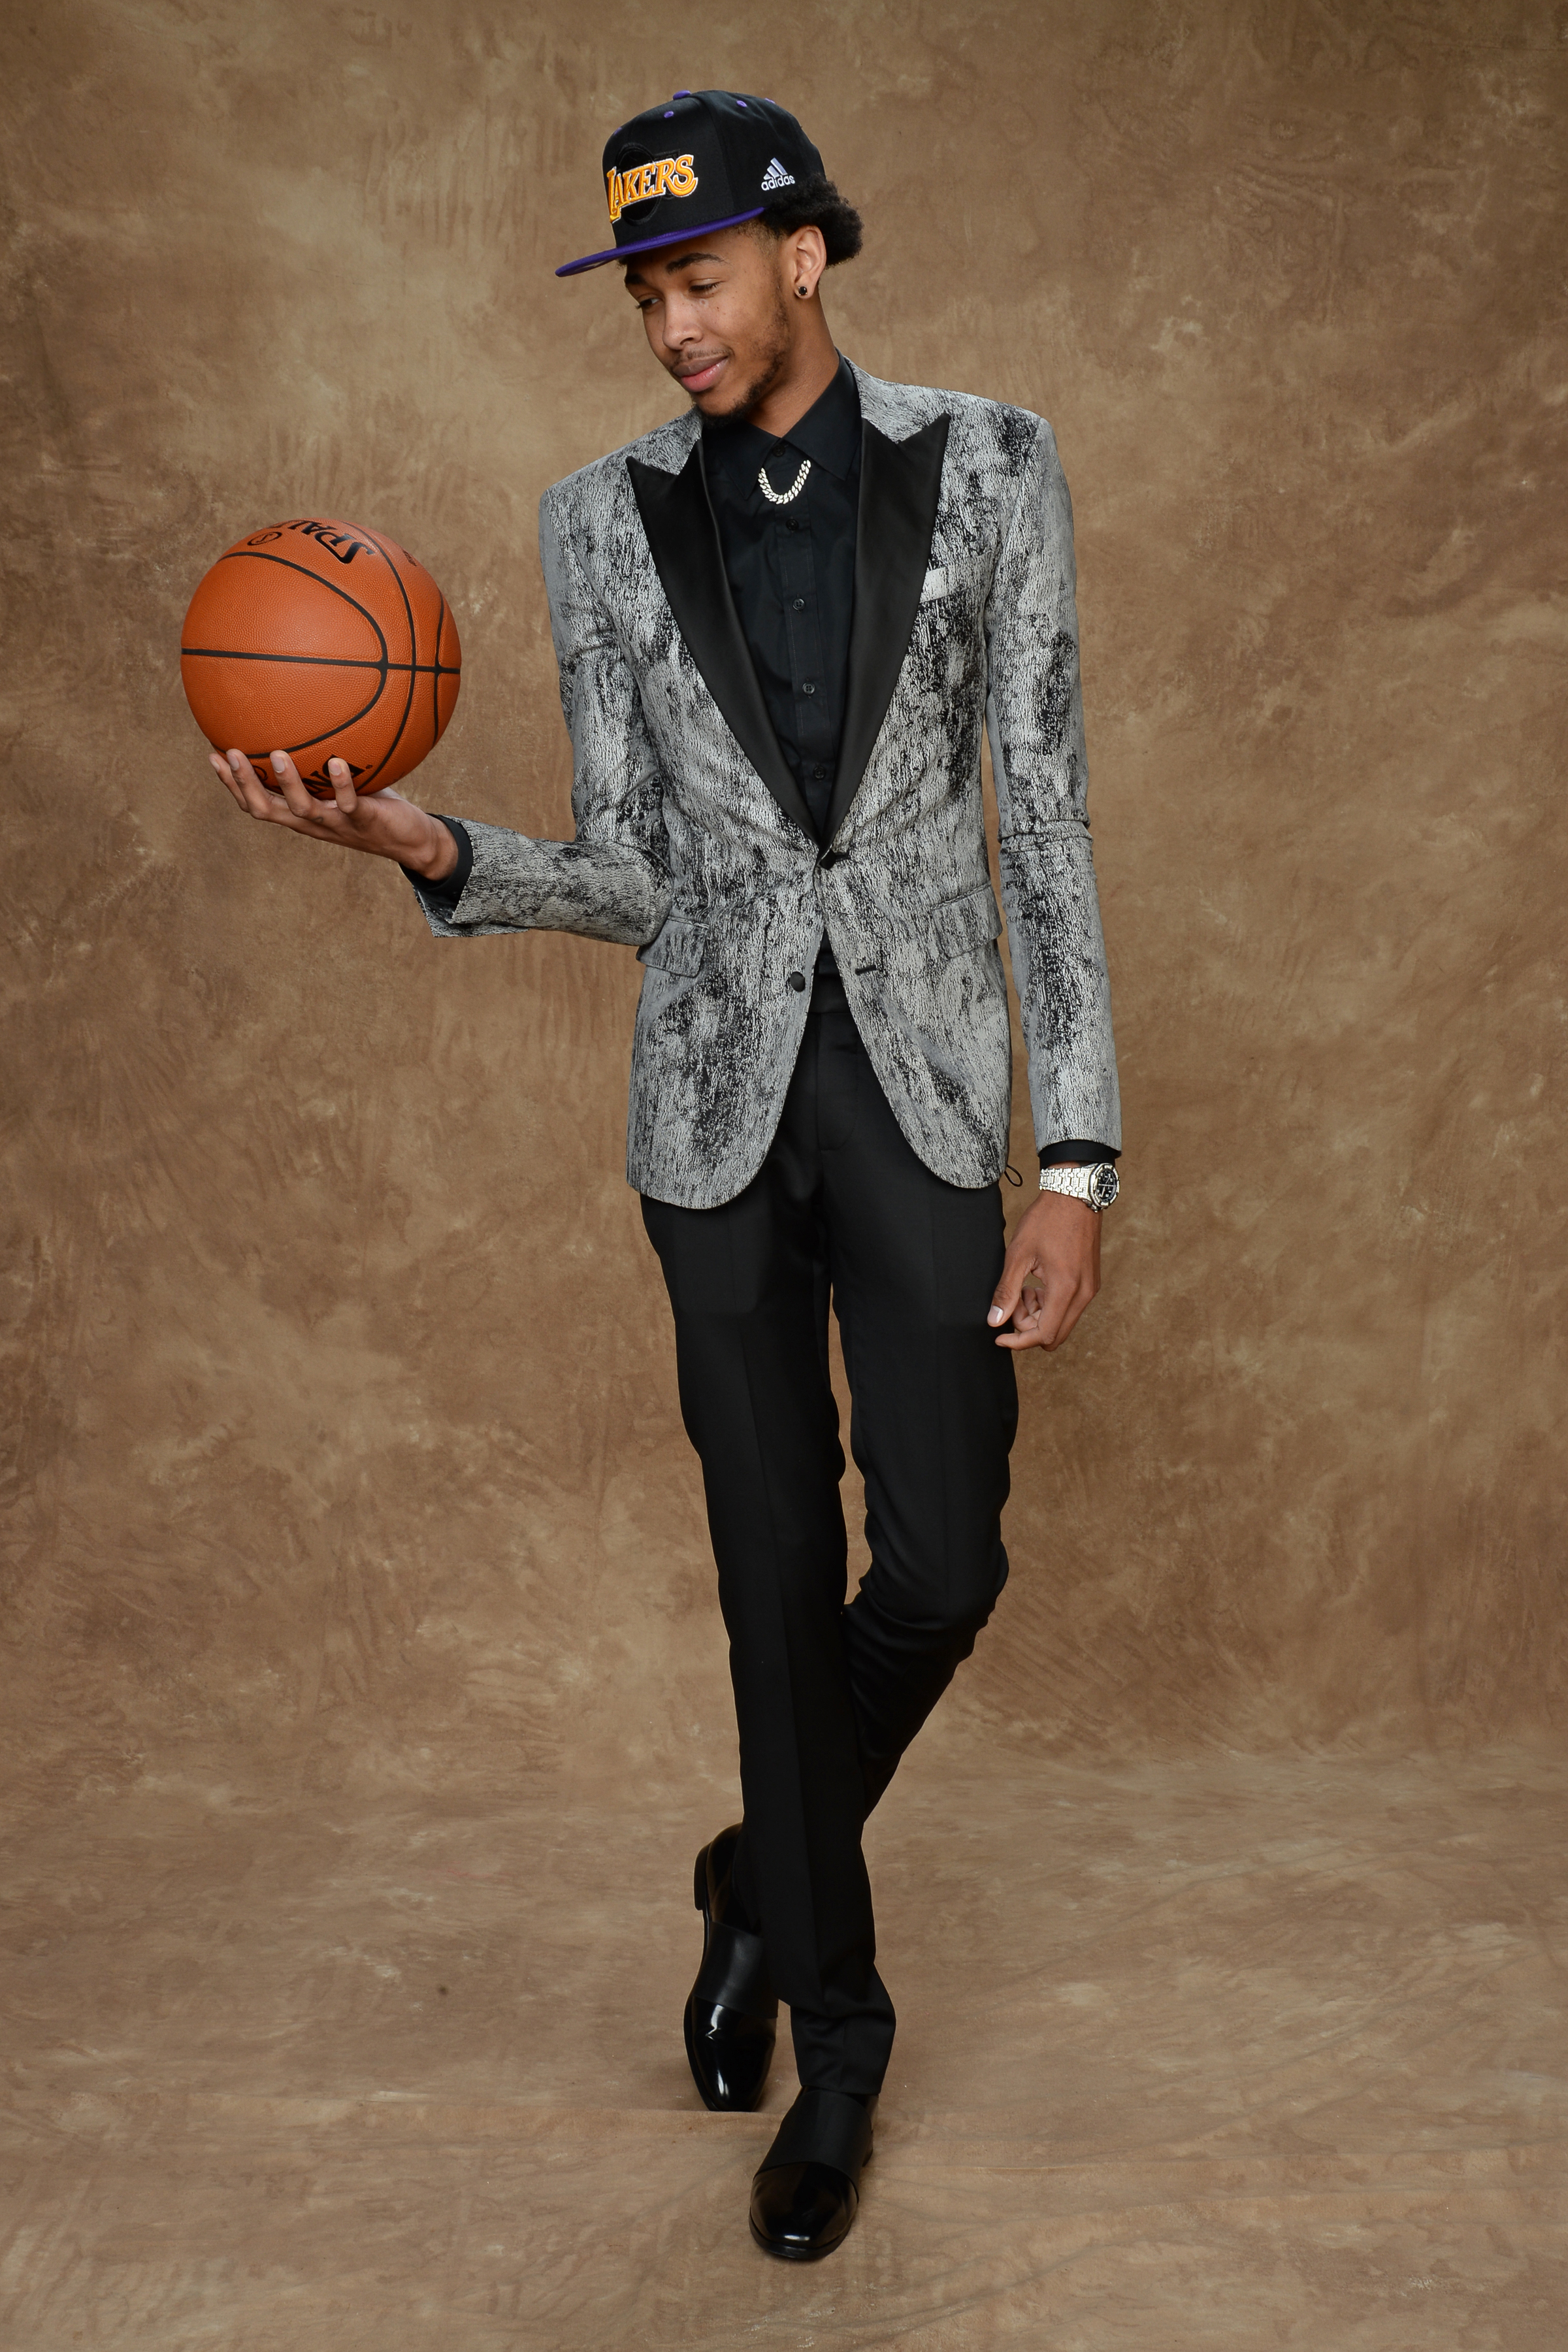 Brandon Ingram's flashy metallic suit cut a daring look at the Draft, making him a perfect sartorial fit for star-studded Los Angeles.